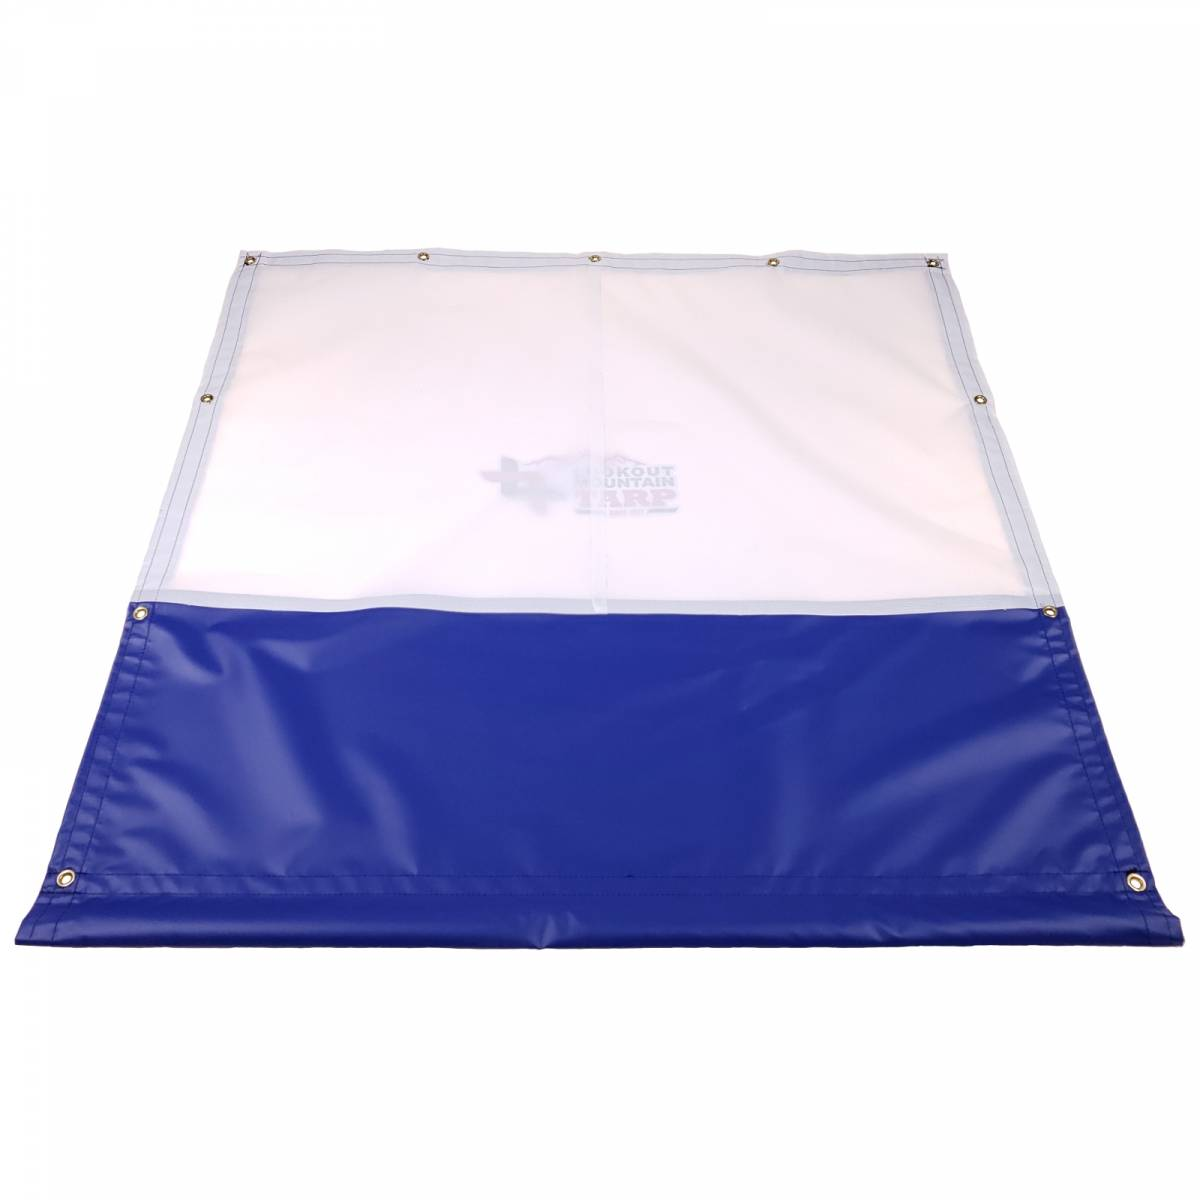 Custom Size Gym Basketball Court Curtain Divider Tarp